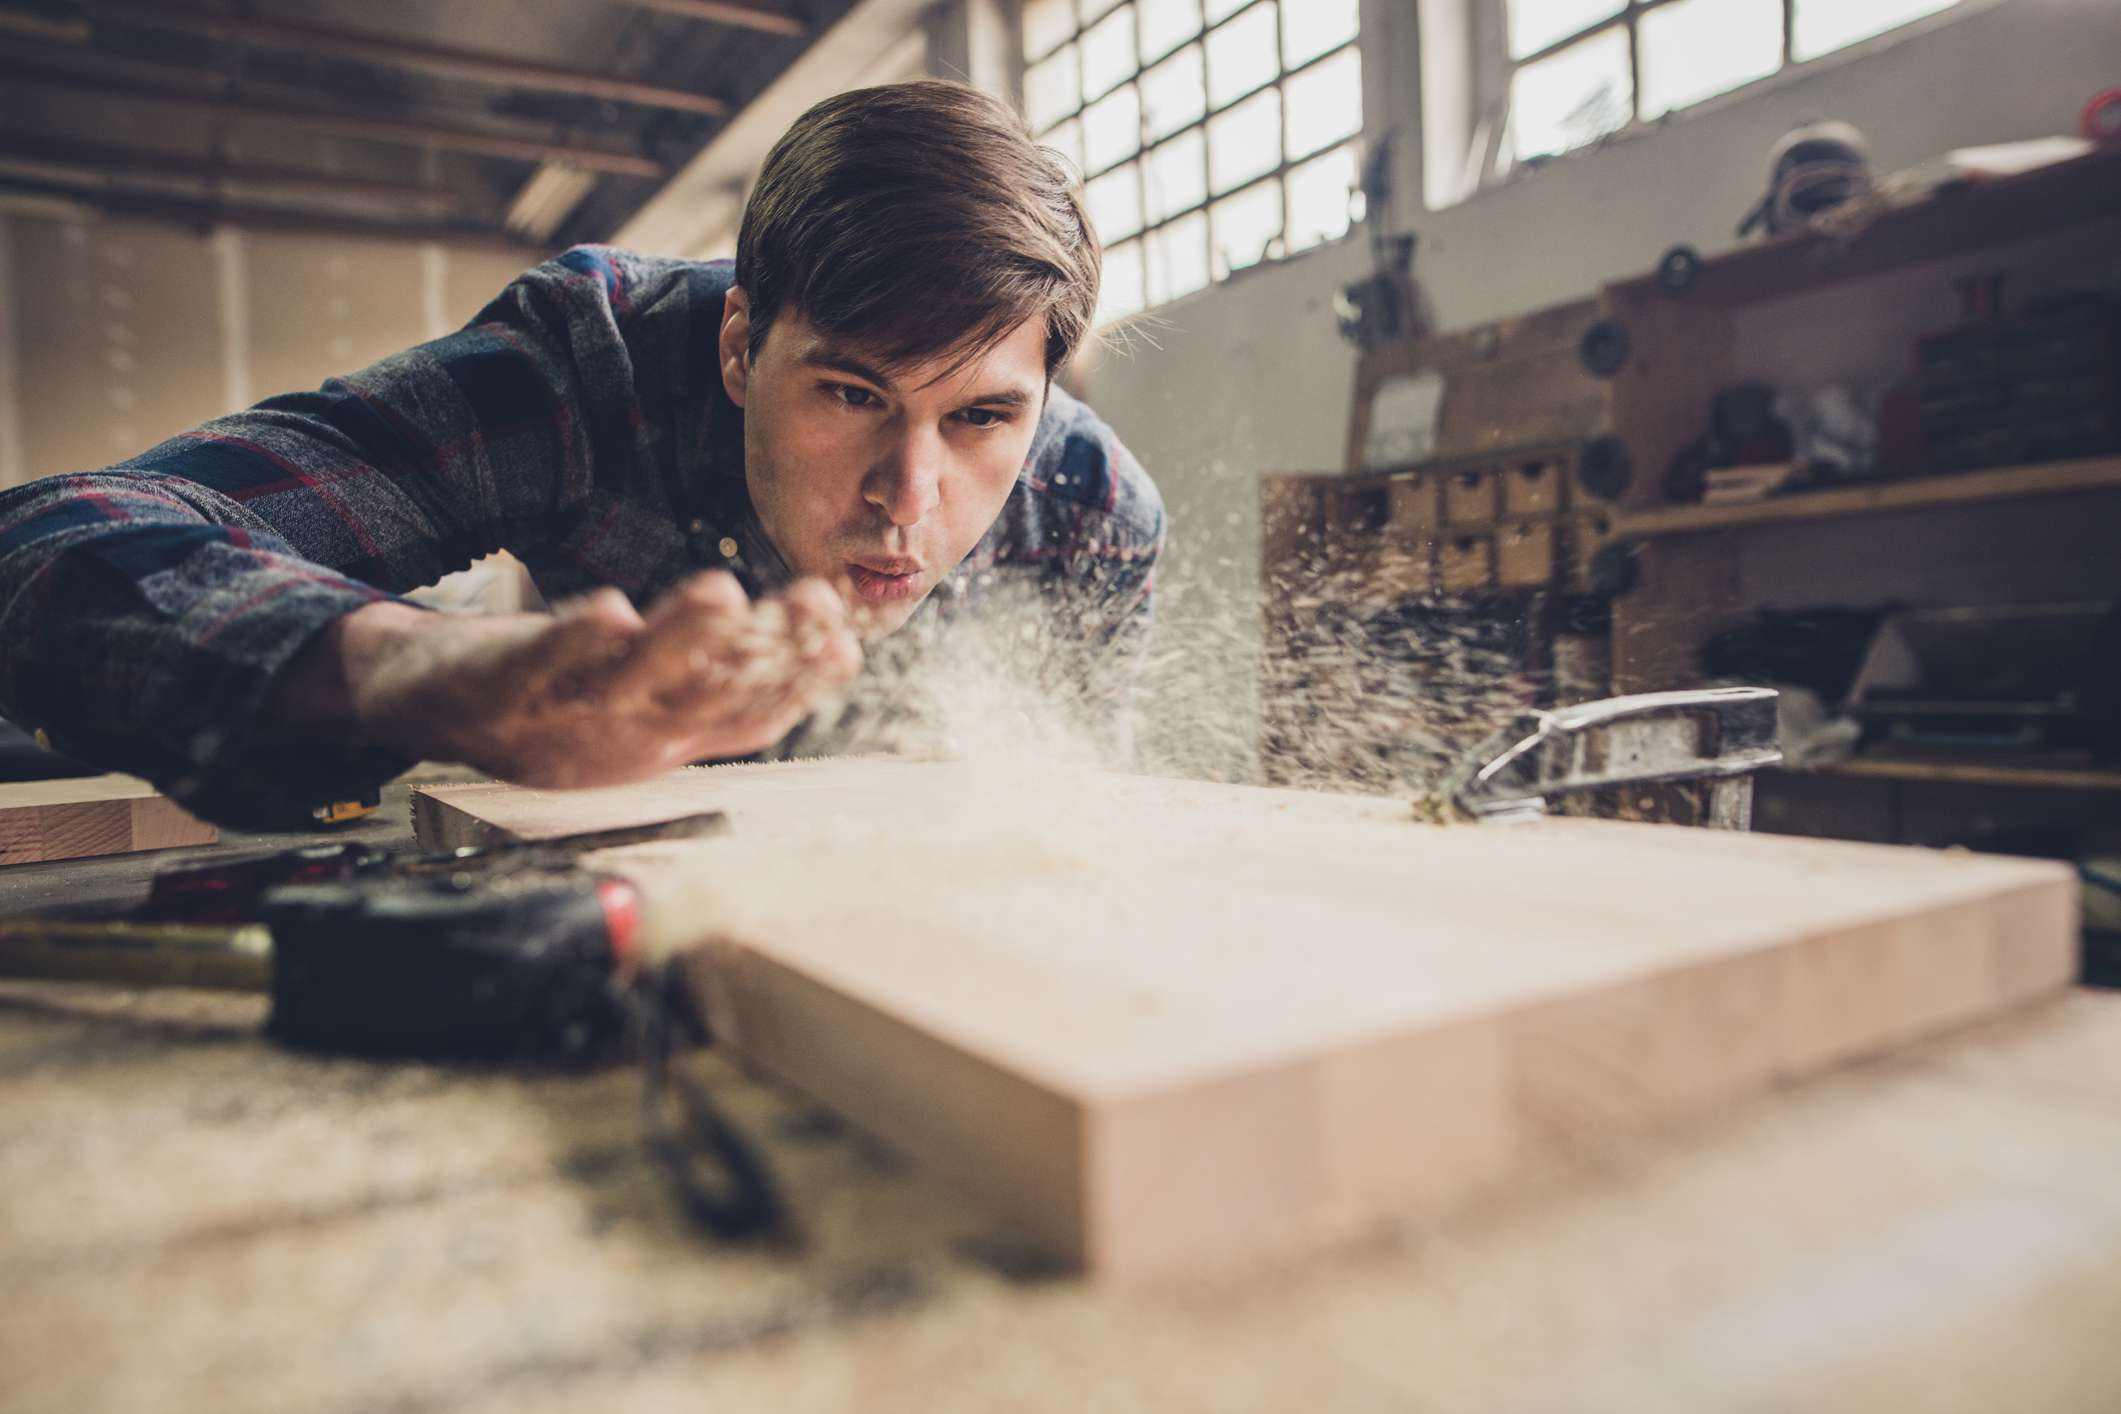 A carpenter blowing sawdust off a wooden board